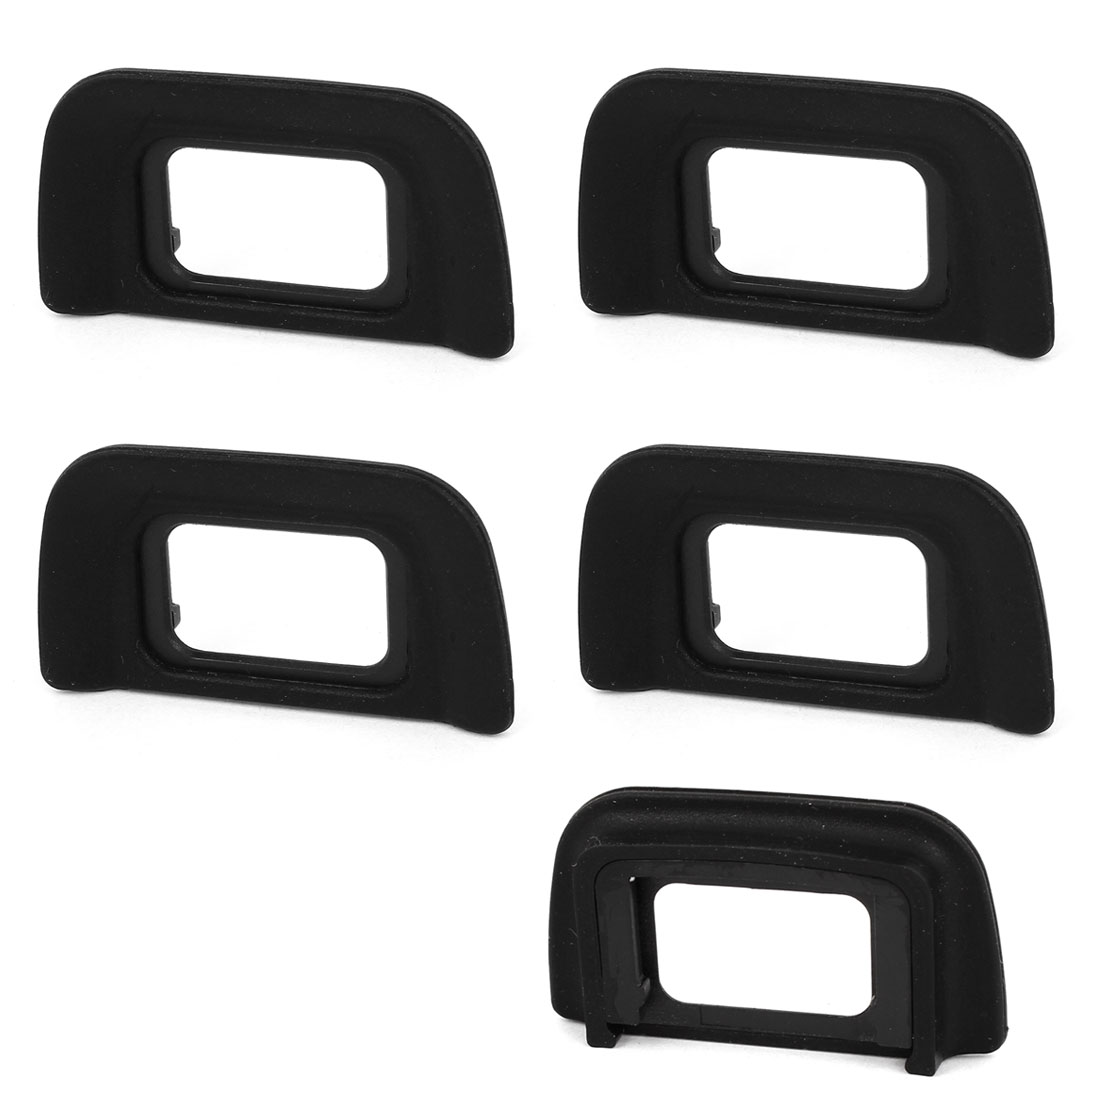 5pcs DK-20 Eyepiece Eye Cup Replacements for DSLR